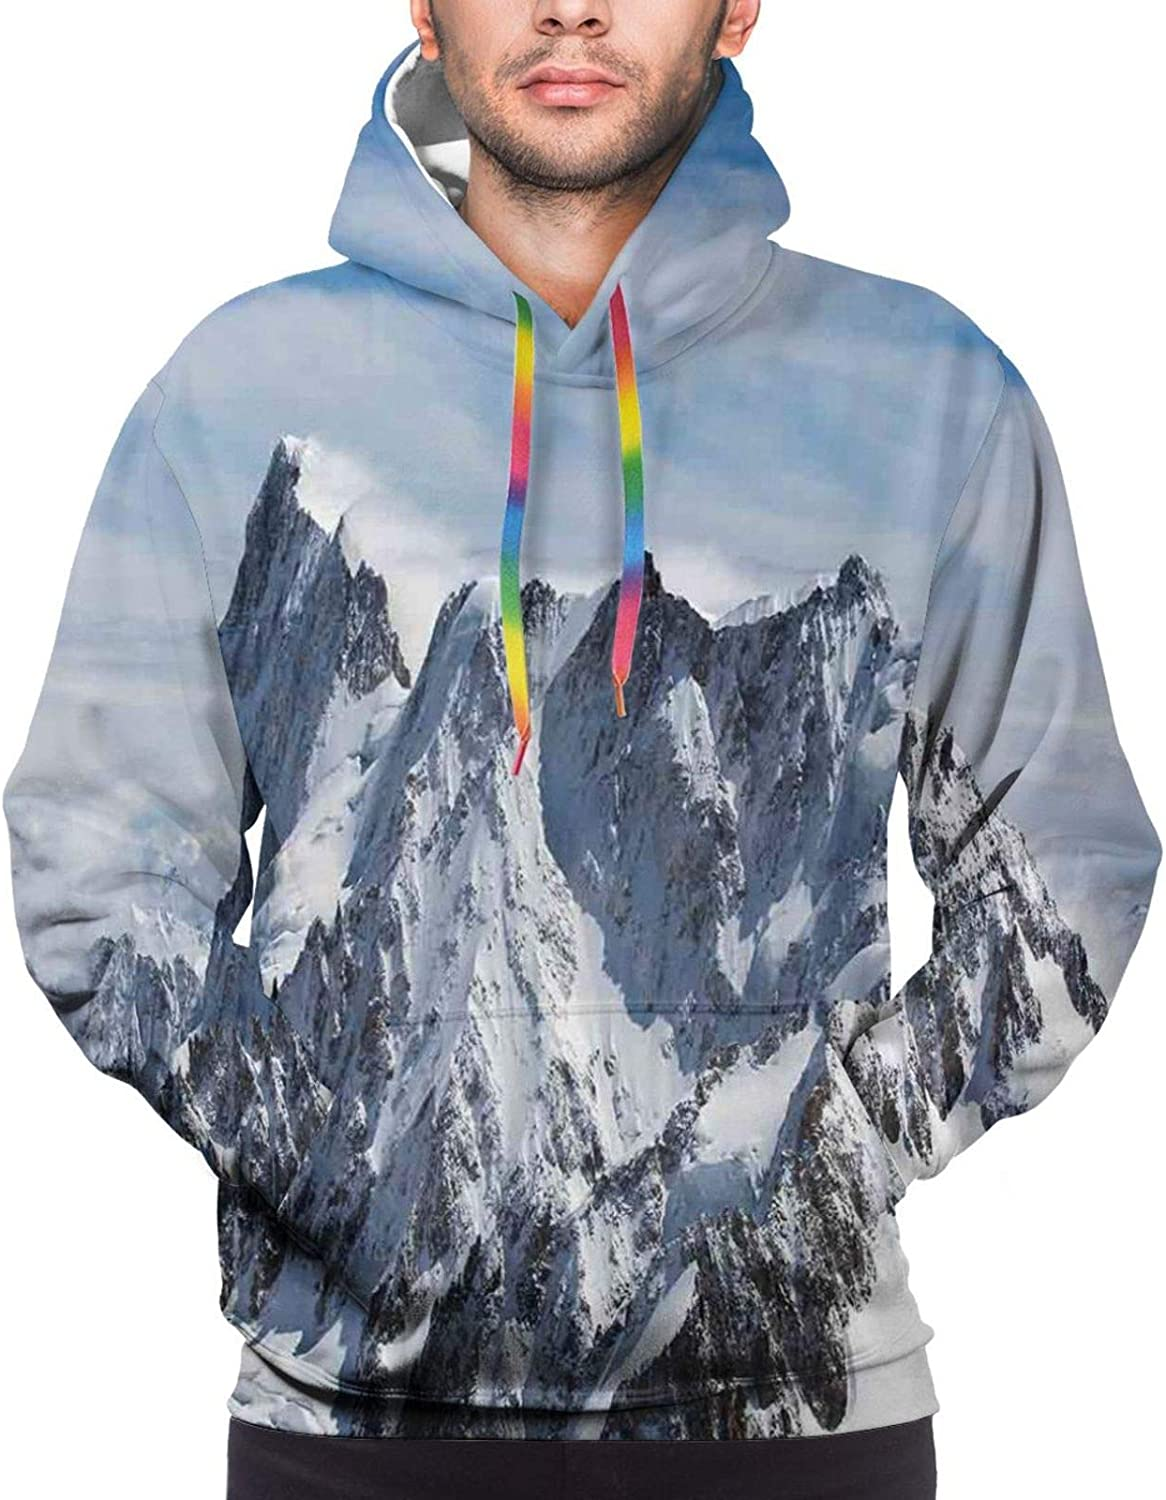 Men's Hoodies Sweatshirts,Picturesque Grand Canyon Cliffs Cathedral Rock in Formations Valley with Violet Sky